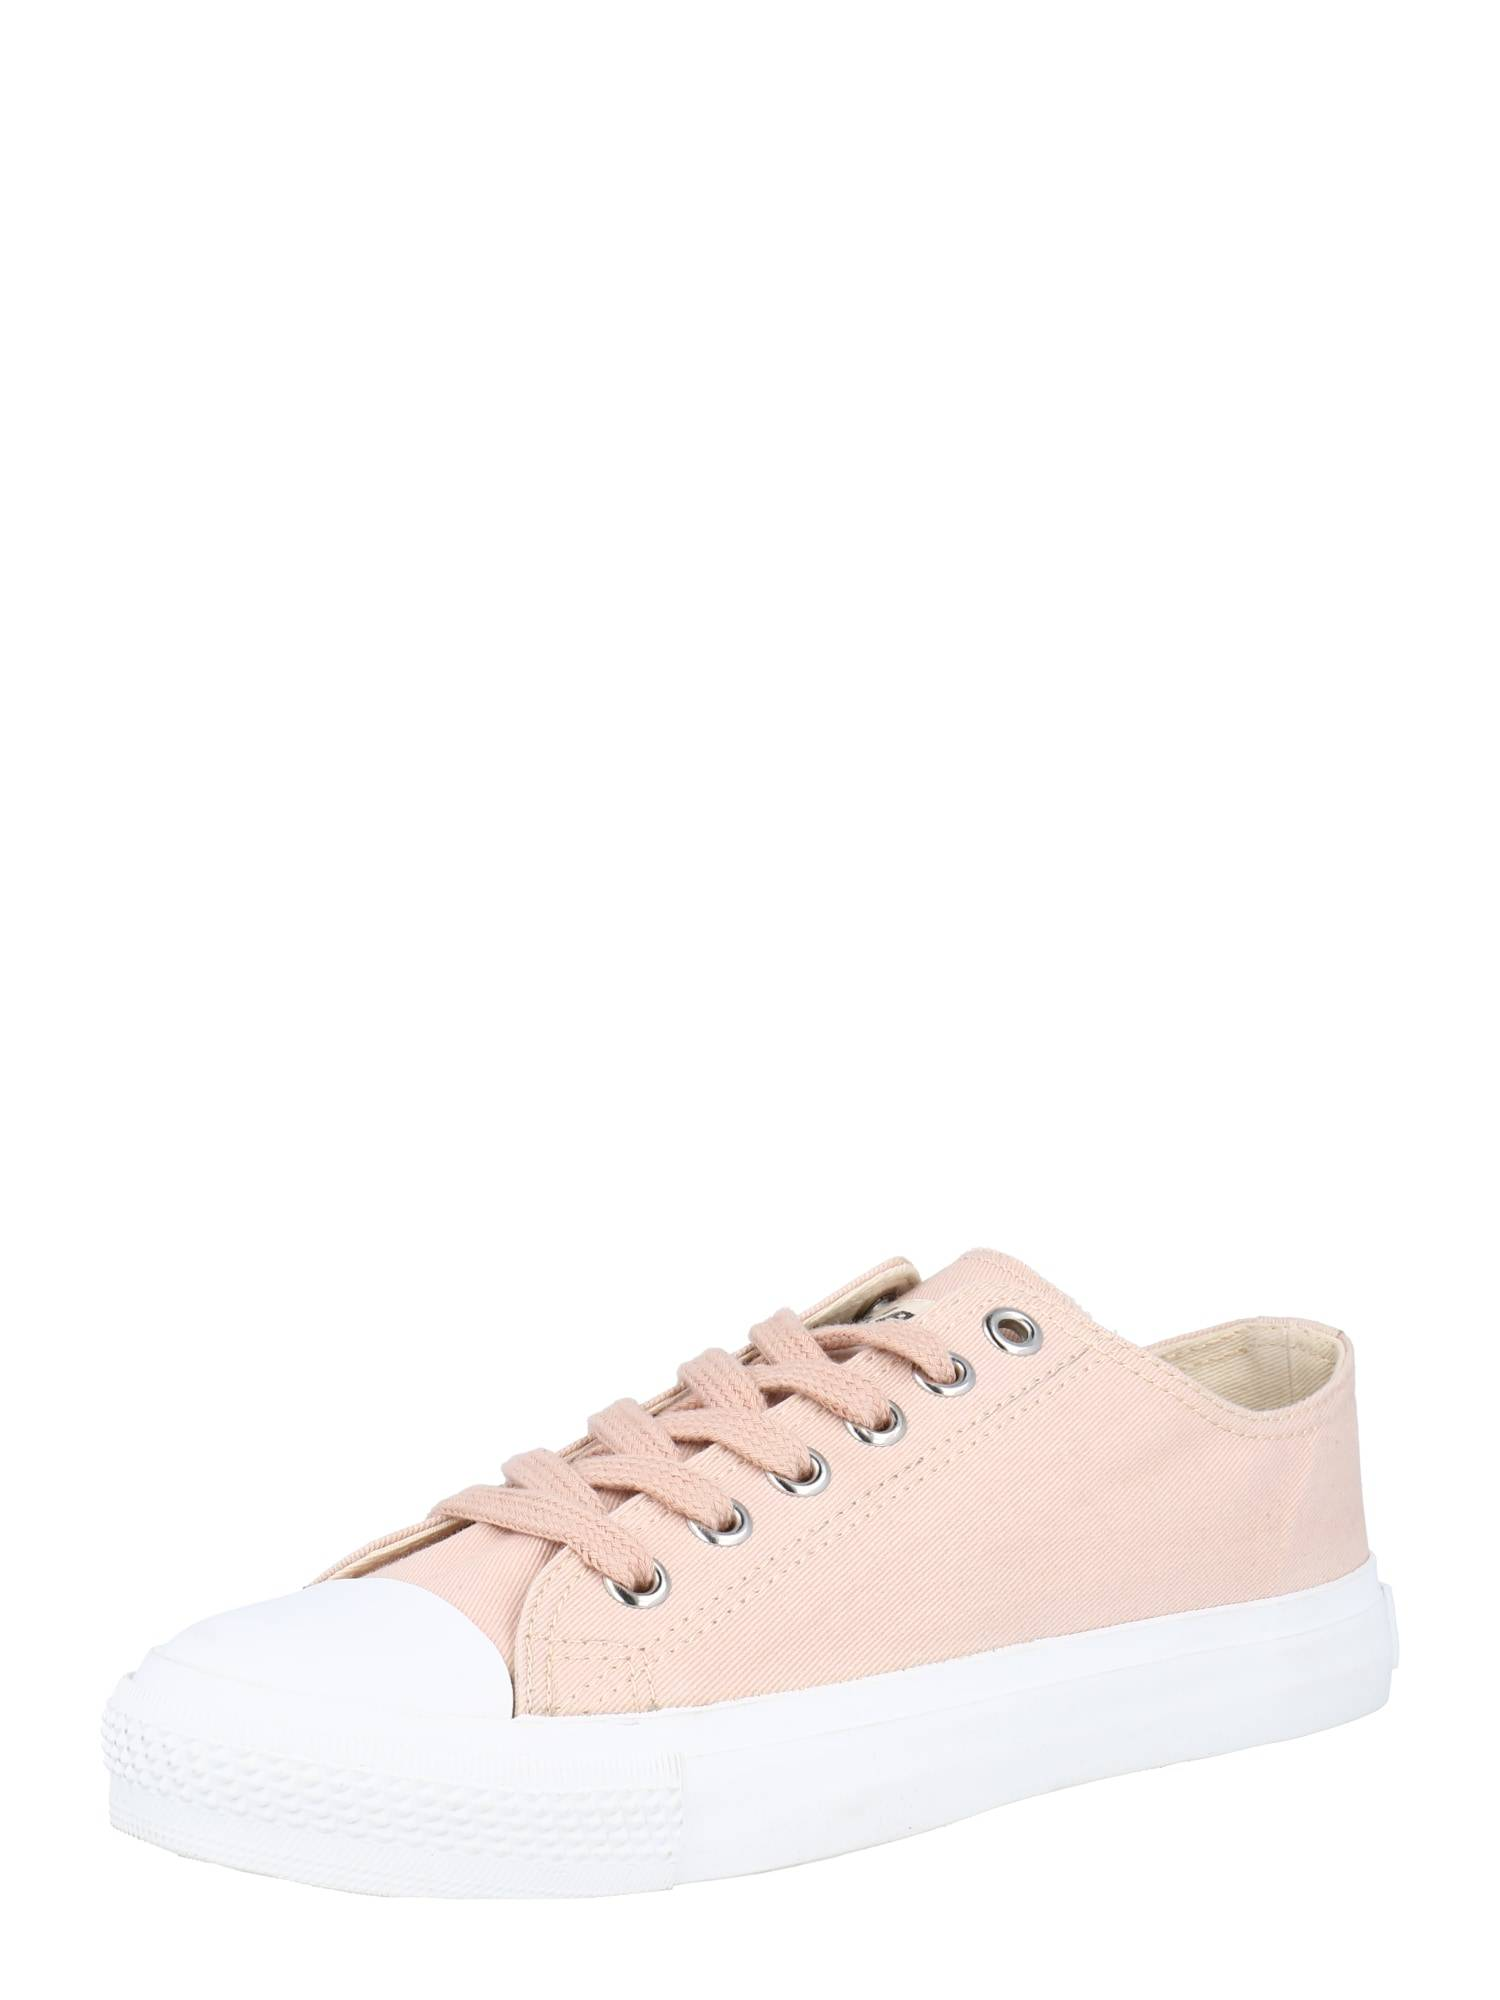 Ethletic Baskets basses 'Fair Trainer White Cap Low Cut'  - Rose - Taille: 36 - male